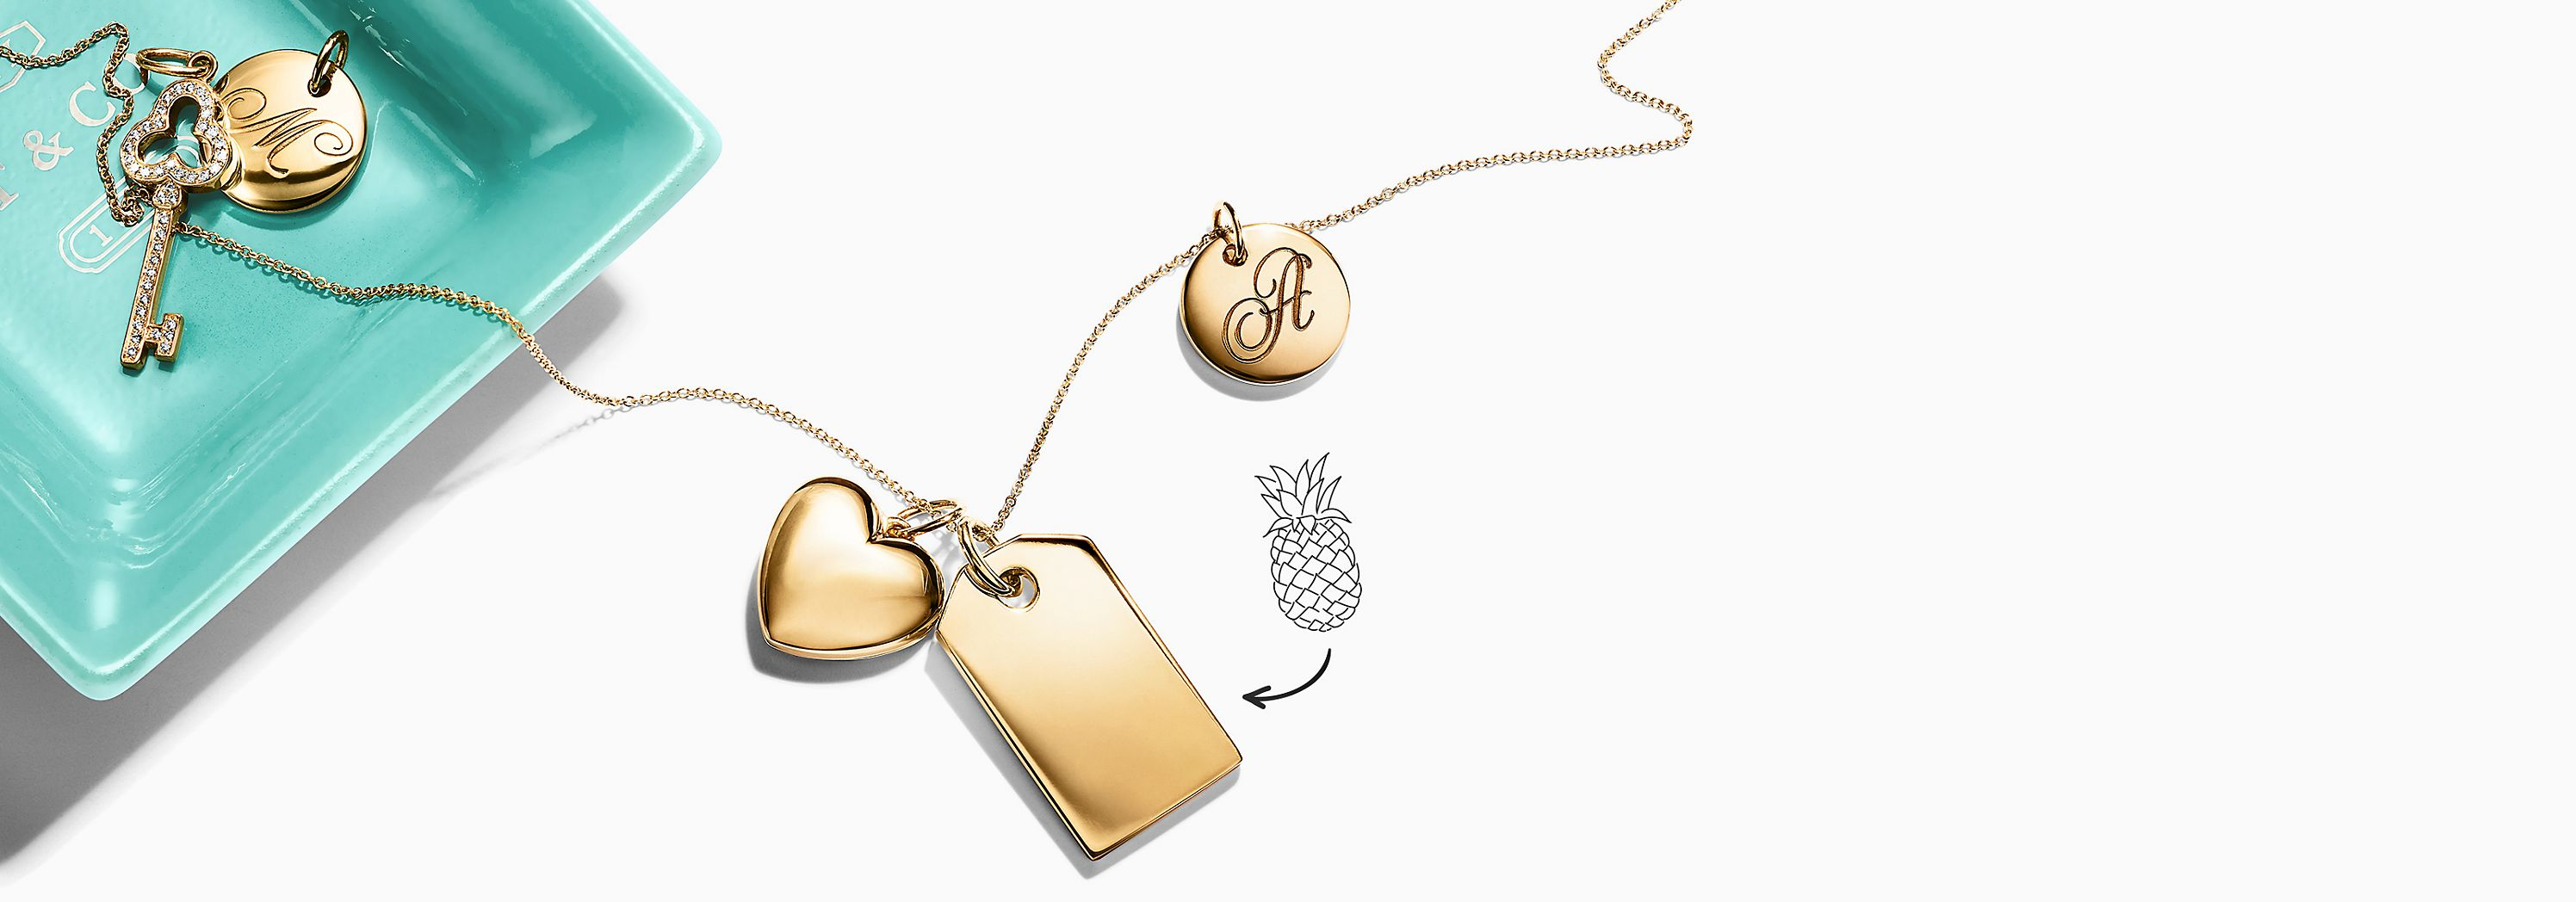 Shop Tiffany & Co. Gifts to Personalize